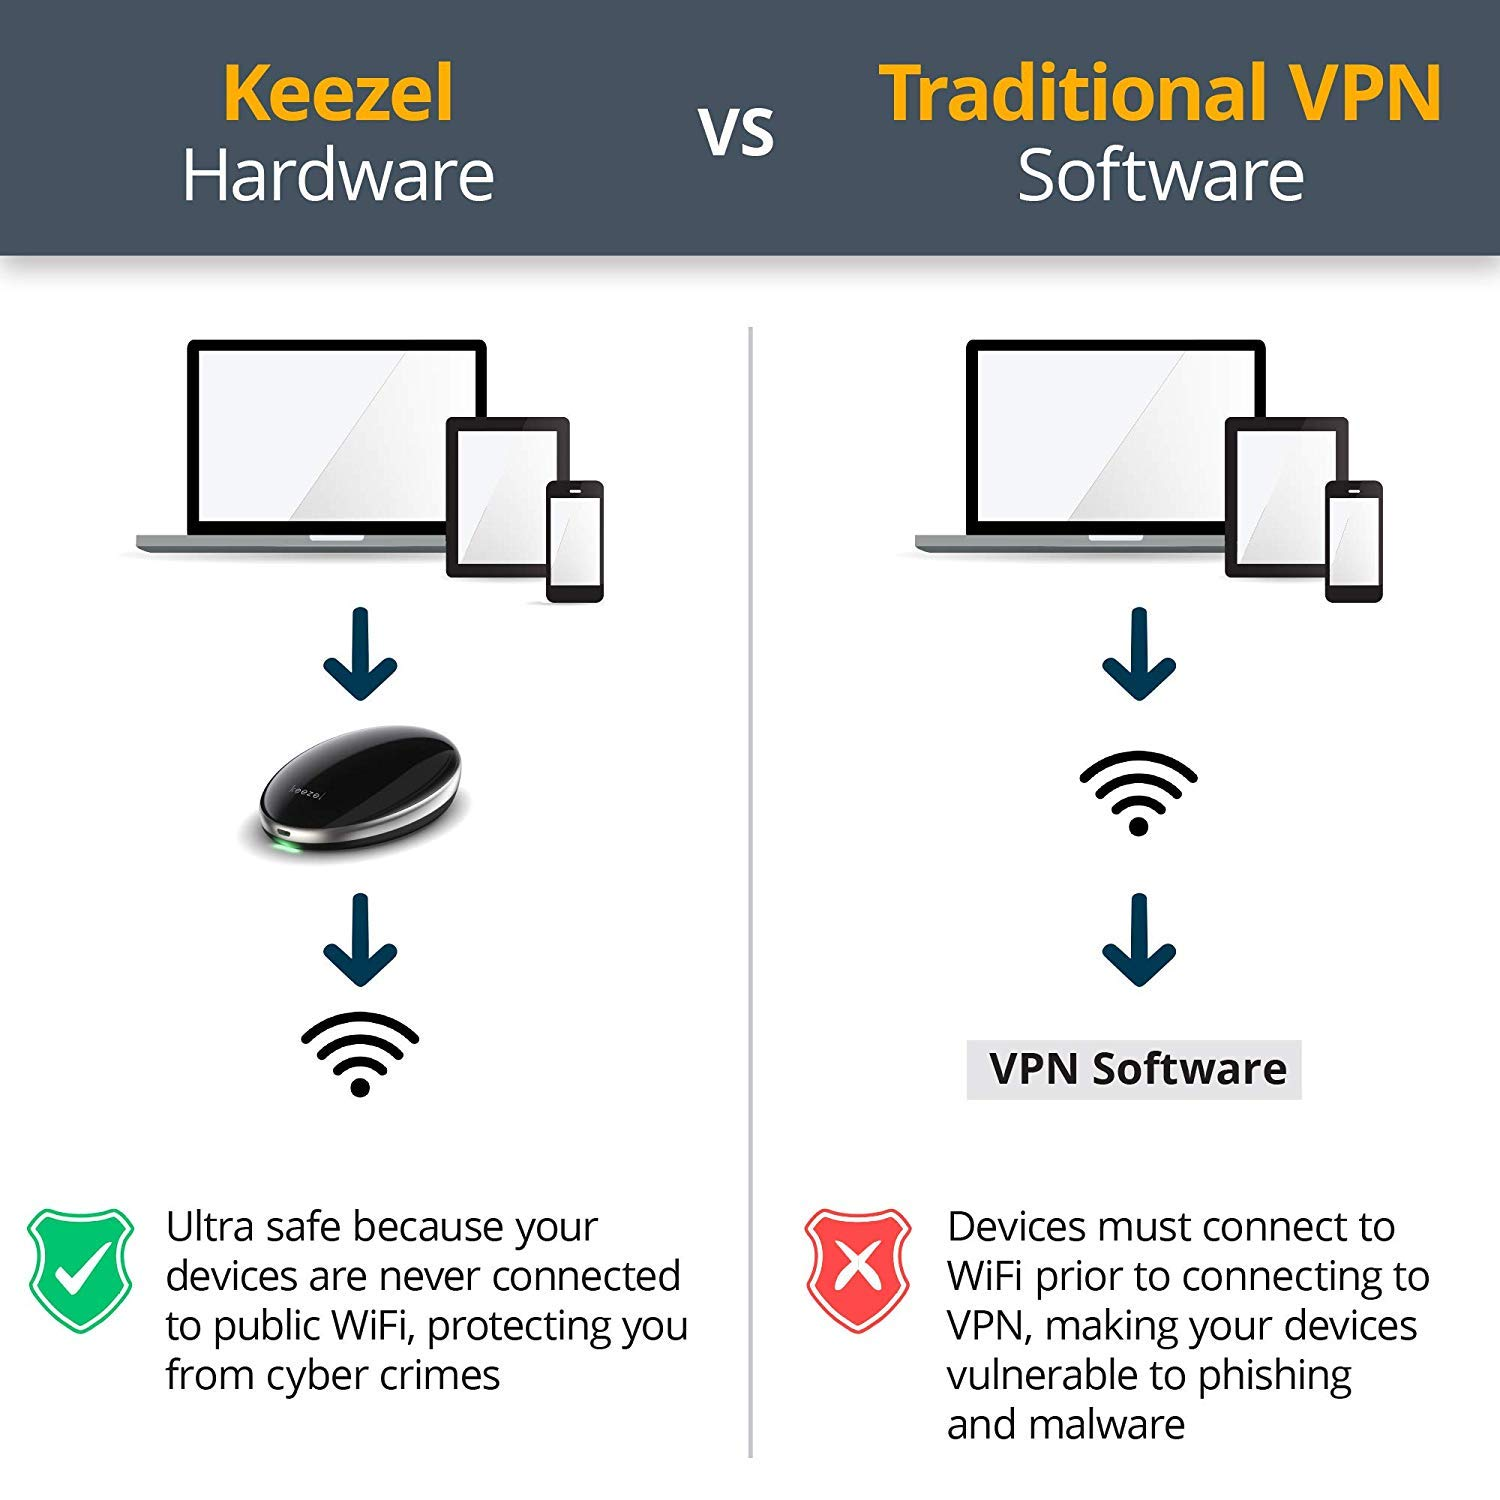 Keezel Vpn Portable Router For Wireless Internet Diagram Connection With Built In Firewall Premium That Creates Online Security And